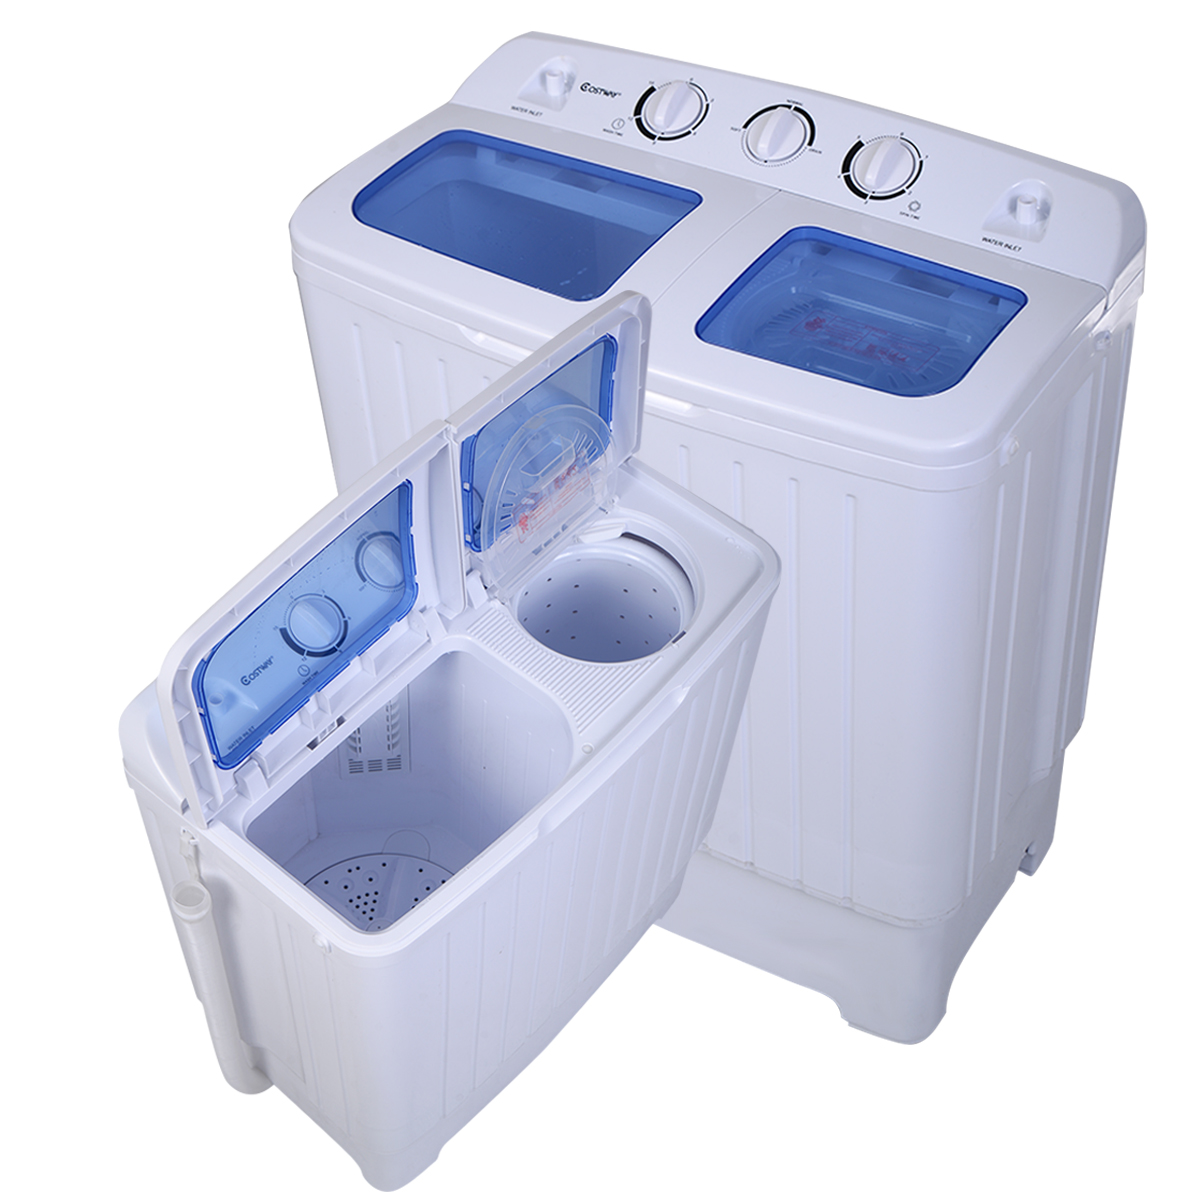 Costway Portable Mini Compact Twin Tub 17.6lb Washing Machine ...